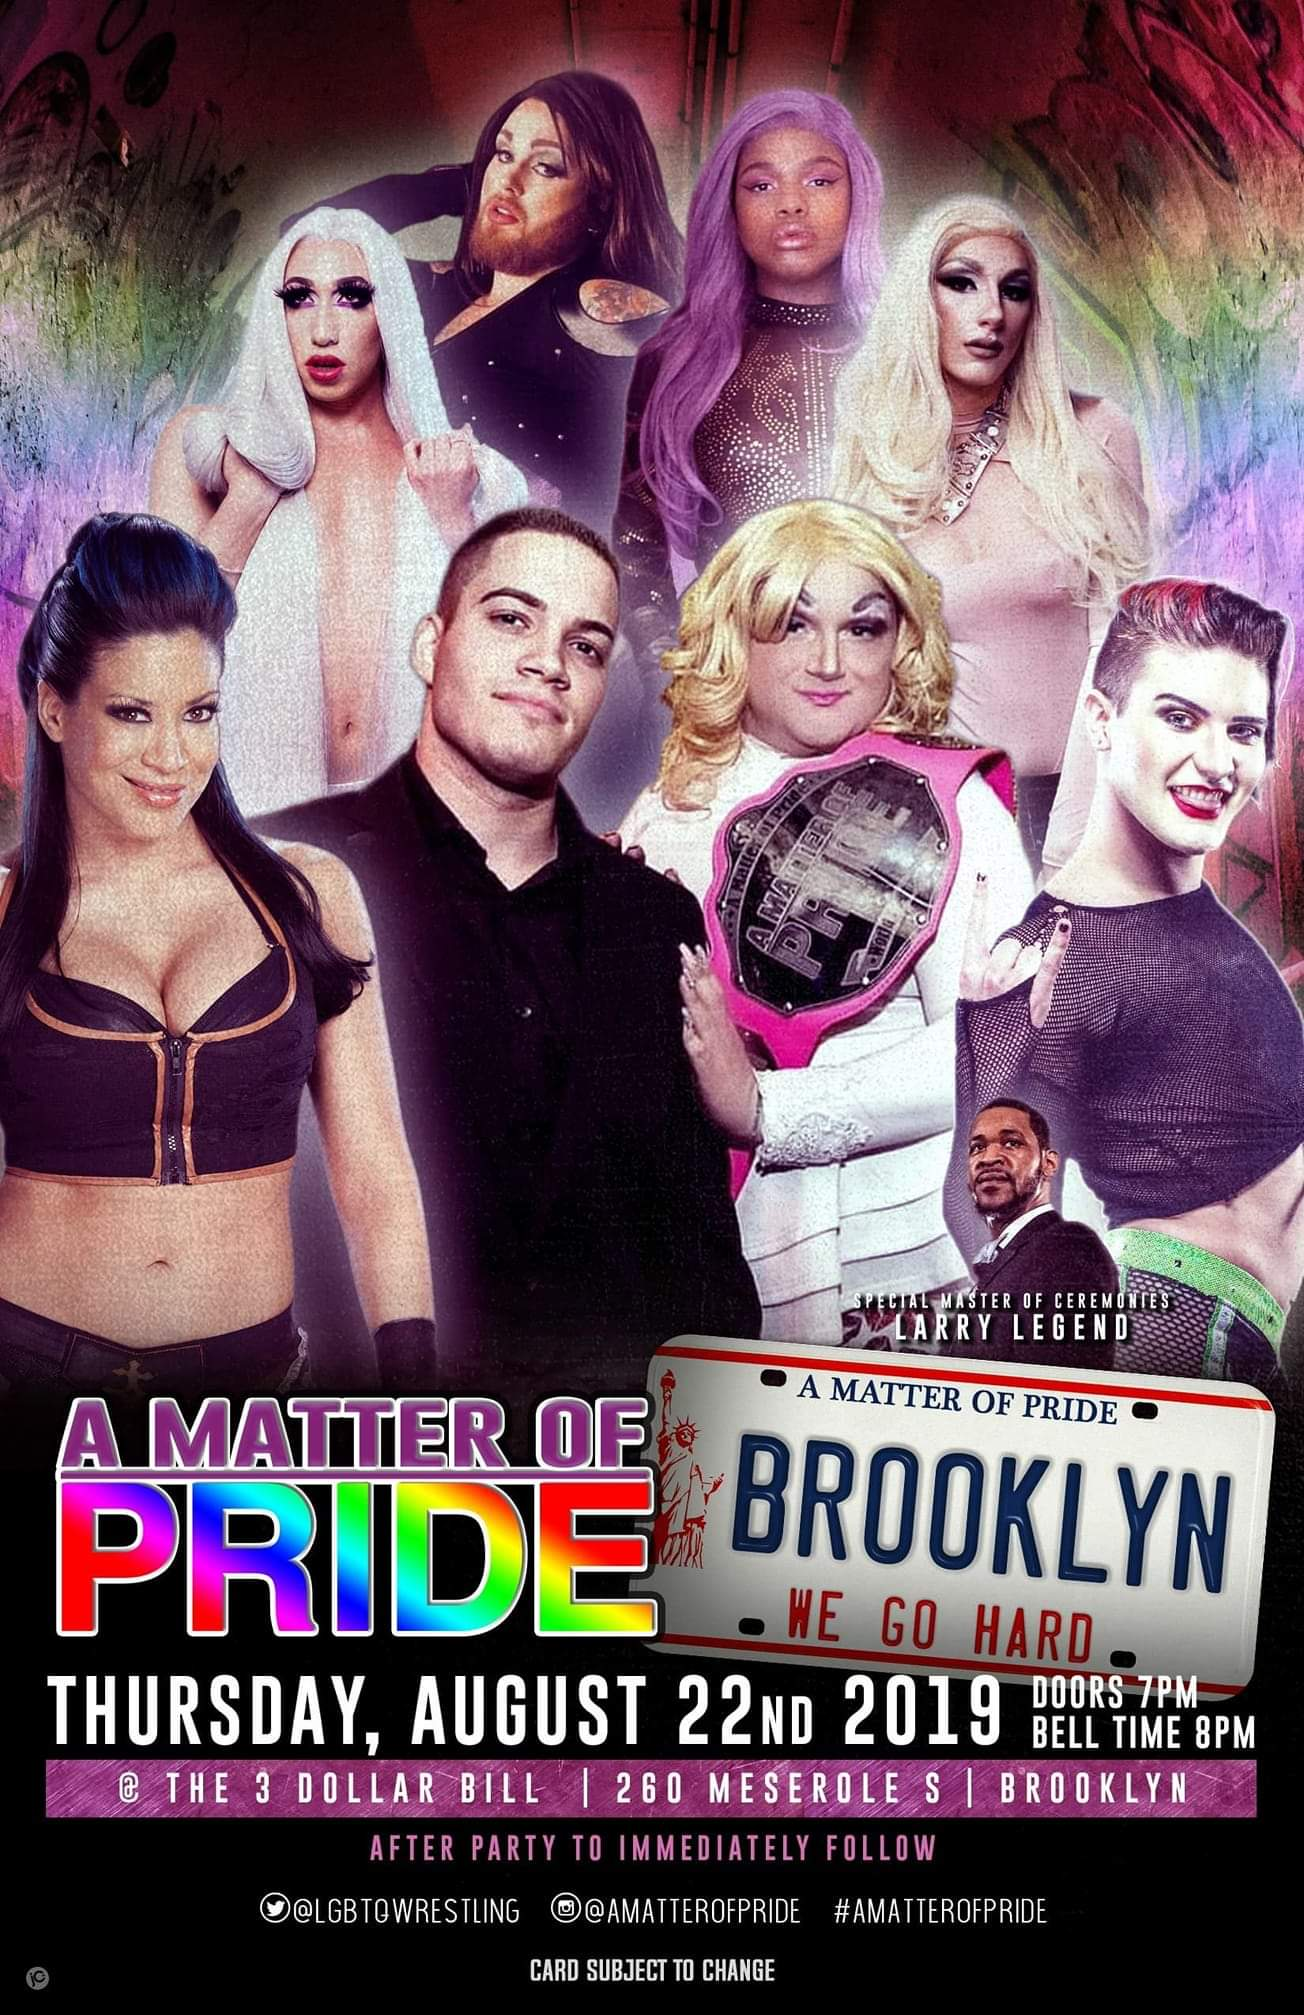 Witness a Pro Wrestling experience like no else.. A Matter of Pride! Envisioned by 14 year pro wrestling veteran and New York City Drag Queen The Boy Diva Rick Cataldo, A Matter of Pride gives an alternative way to enjoy sports entertainment... It's like Rupaul's Drag Race meets WWE Wrestlemania and you can catch the live shows at 3 Dollar Bill in Bushwick. Brooklyn New York! presented by NYWC     A Matter of Pride presents #BrooklynWeGoHard live from 3 Dollar Bill 260 Meserole St, Brooklyn, NY 11206 ________________________________     Featuring former WWE Superstar Melina! The Punk Rock Kween Jamie Senegal! The Boy Diva Rick Cataldo Drag Queens Wrestling Sensations Ivory Tight, CoCo Mousse & Lavender Skye! Plus SO MUCH MORE! Hosted by The Master of Ceremonies Larry Legend!     Follow A Matter of Pride on Social Media  Twitter : @LGBTQwrestling  Instagram : @amatterofpride